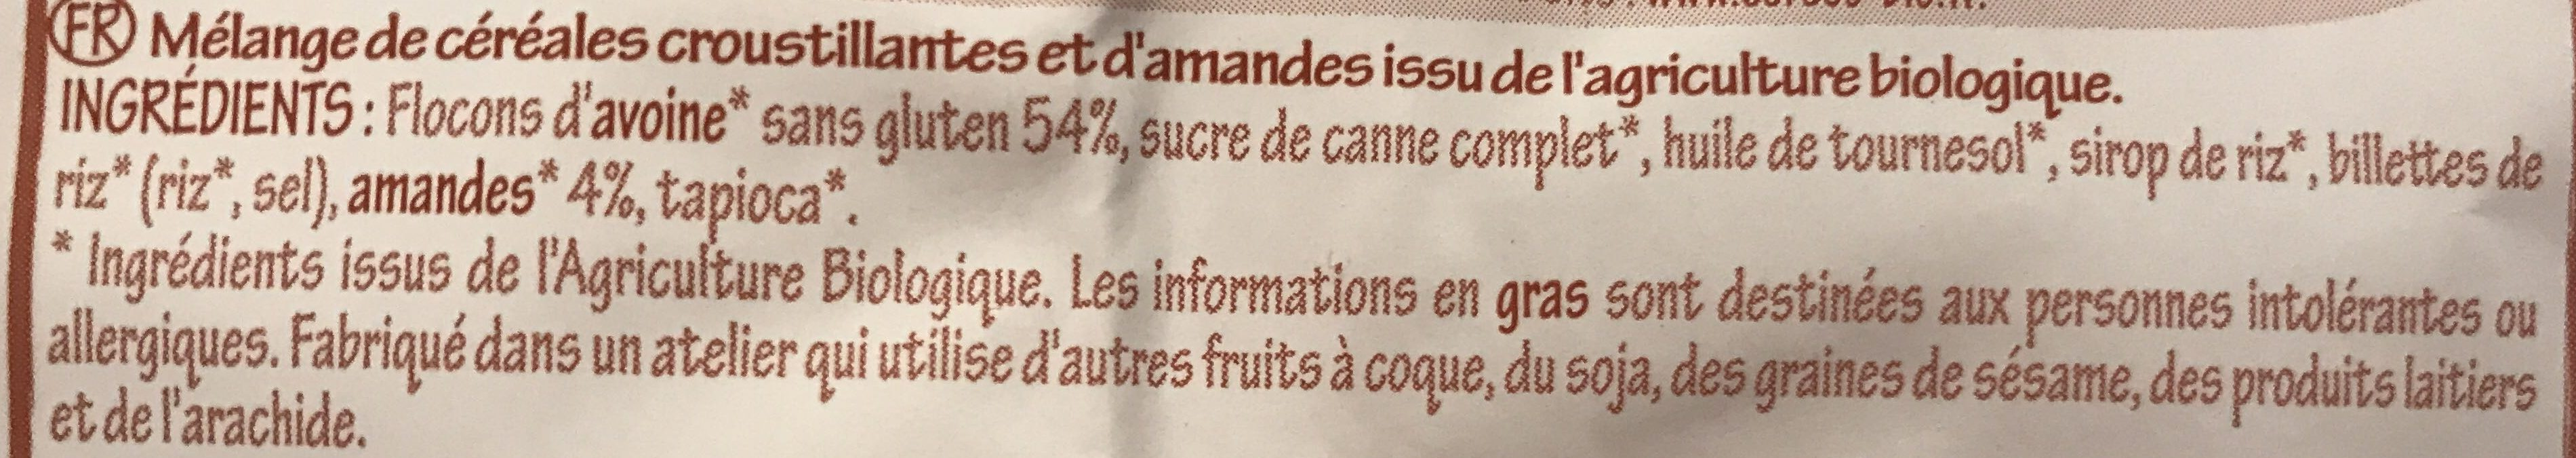 Krounchy amande - Ingredients - fr